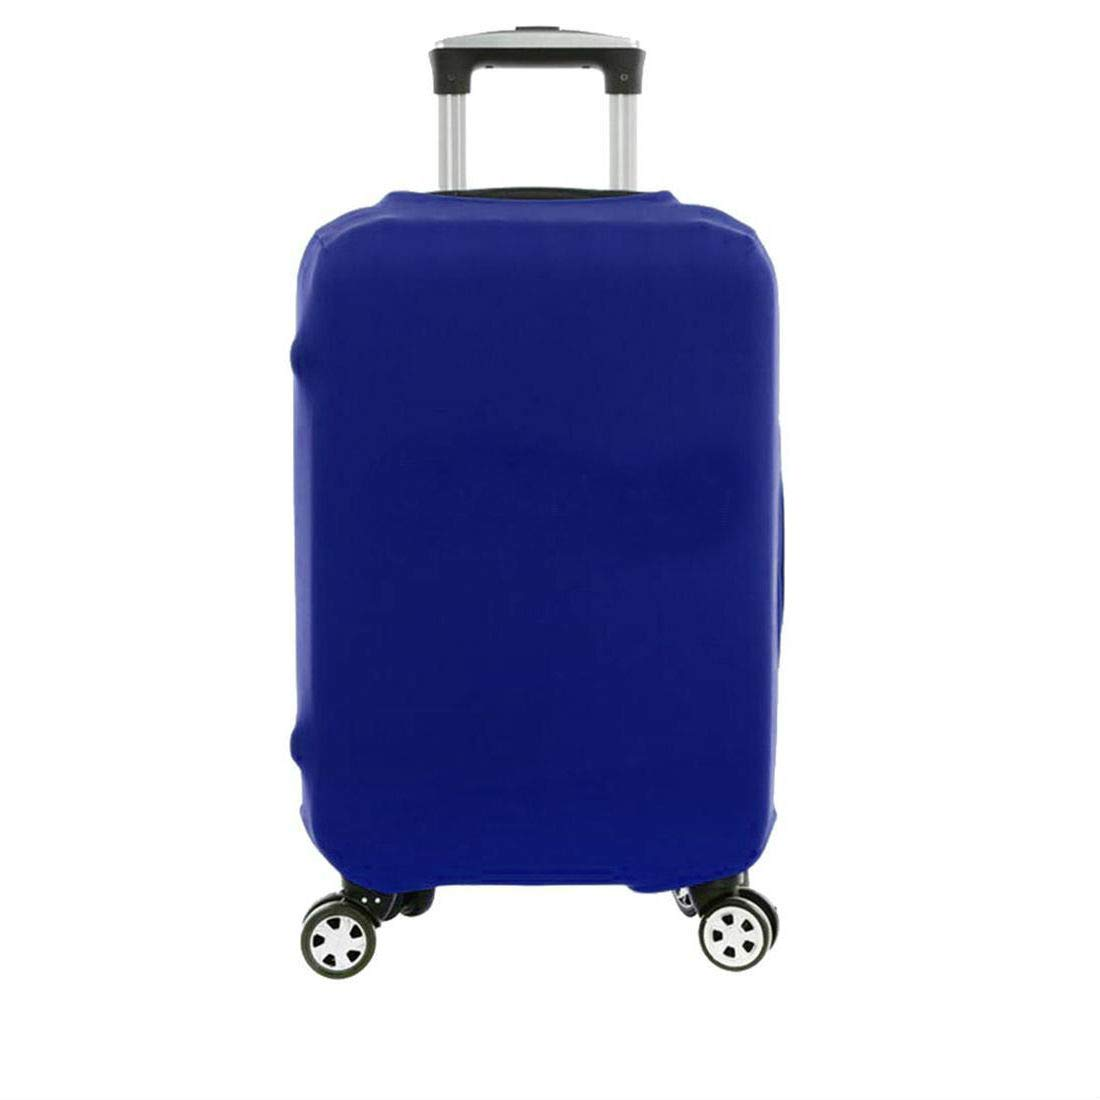 Blue Elastic Luggage Suitcase Bags Cover Protector Anti scratch 18'' 20'' 22'' 24'' 28'' (L - (26''-30''))